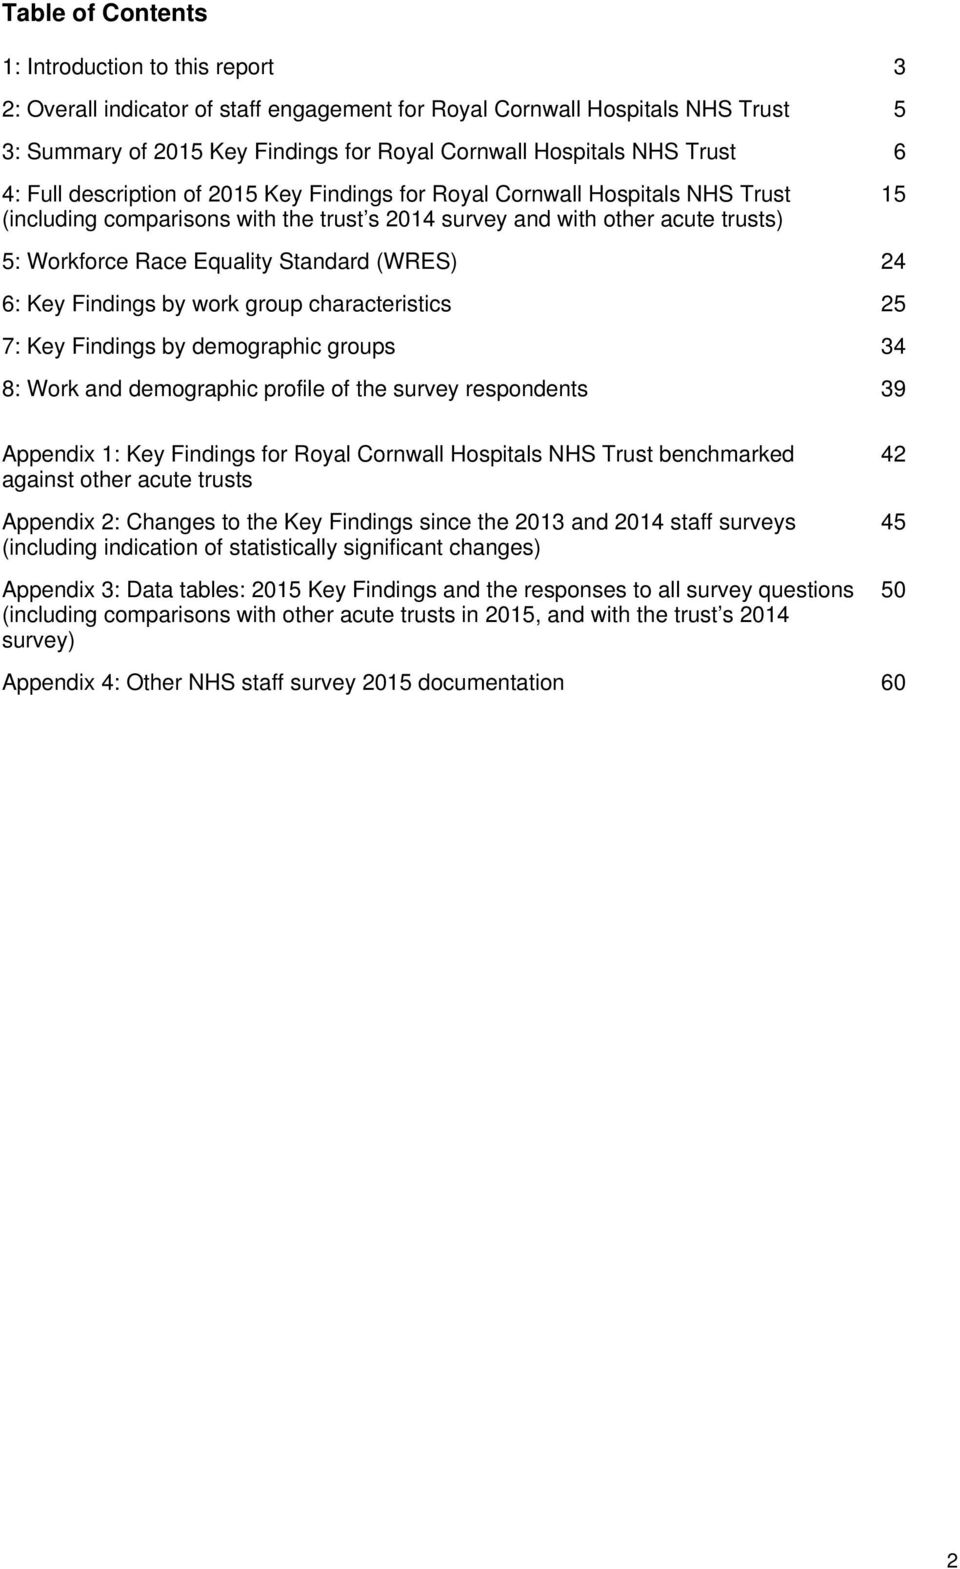 Standard (WRES) 24 6: Key Findings by work group characteristics 25 7: Key Findings by demographic groups 34 8: Work and demographic profile of the survey respondents 39 Appendix 1: Key Findings for